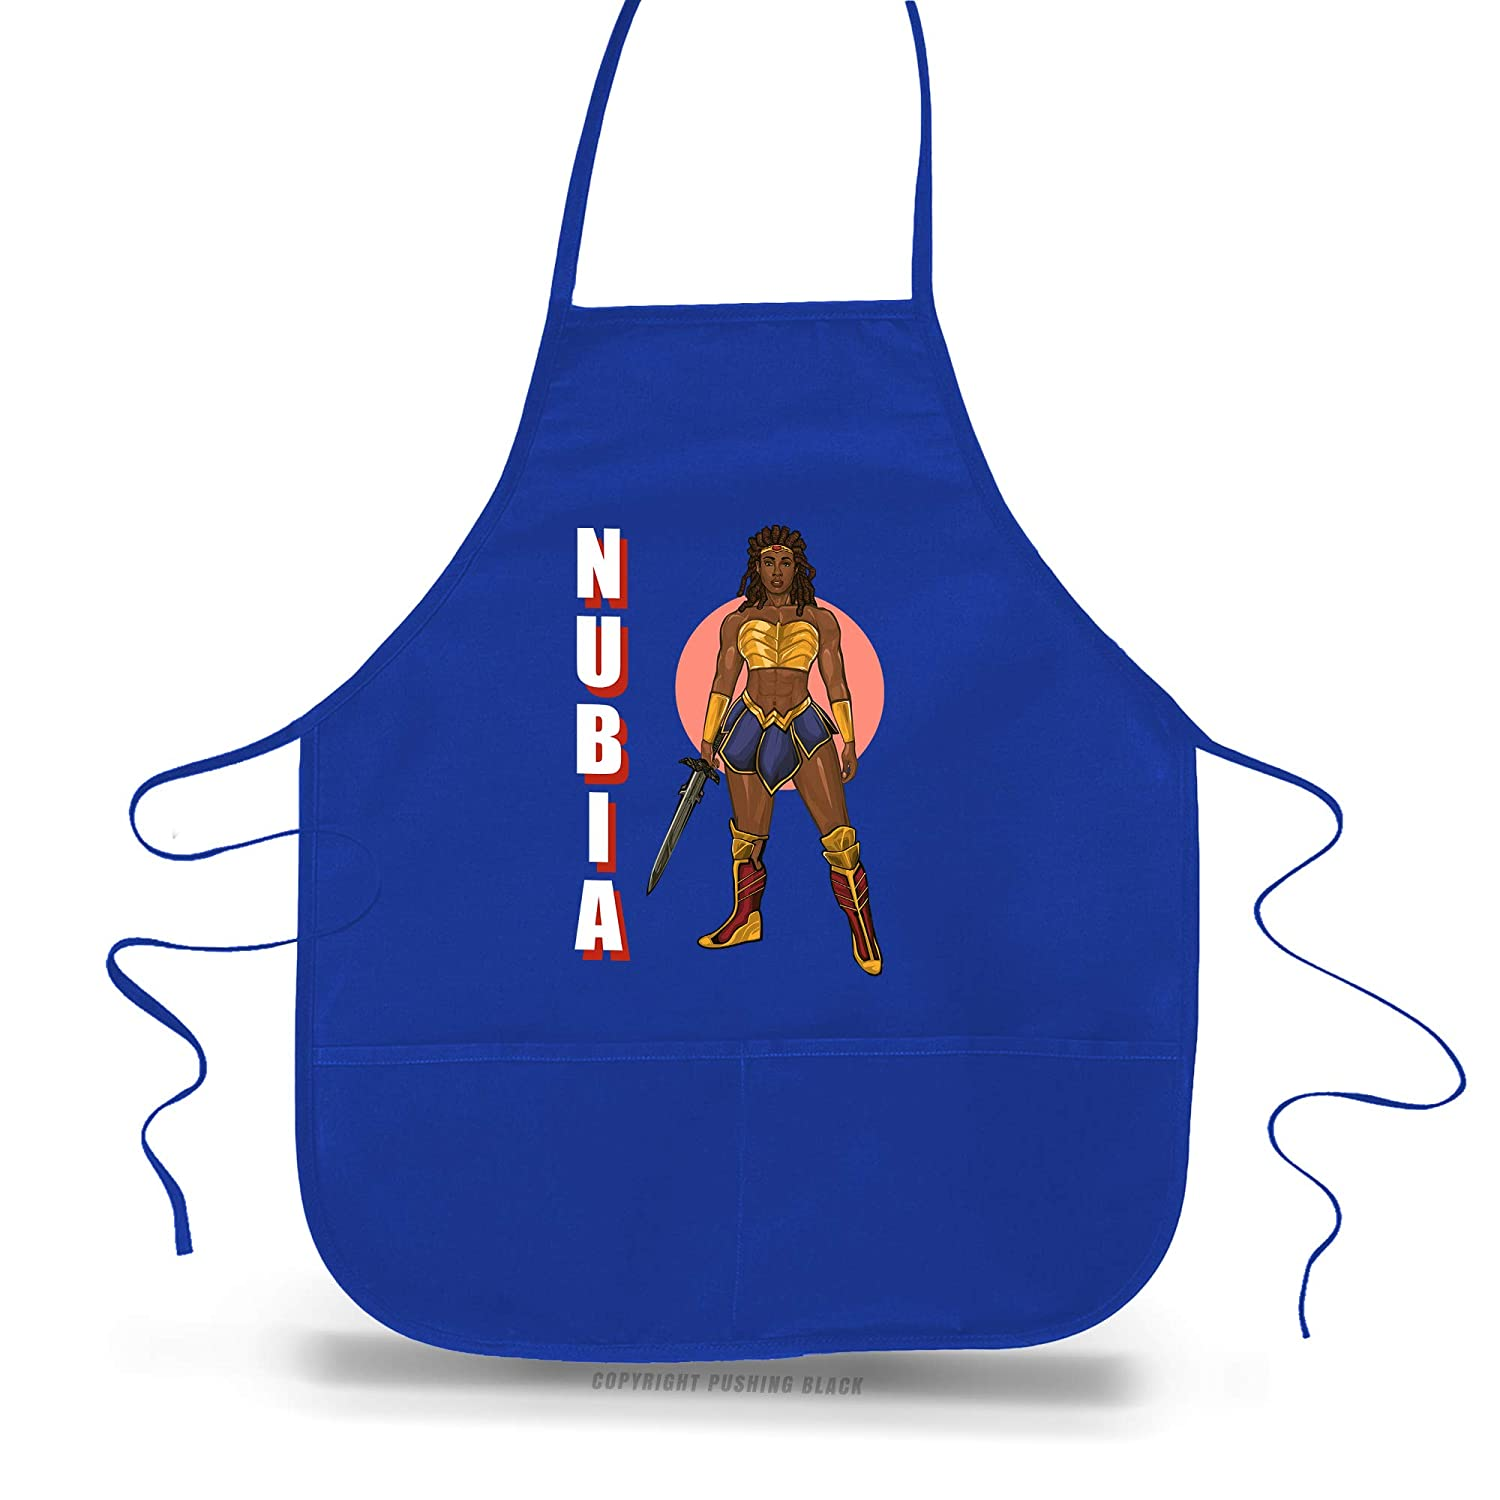 Aprons Nubia Sweatshirts Black Woman of Wonder T-Shirts Tank Tops Hoodies and More